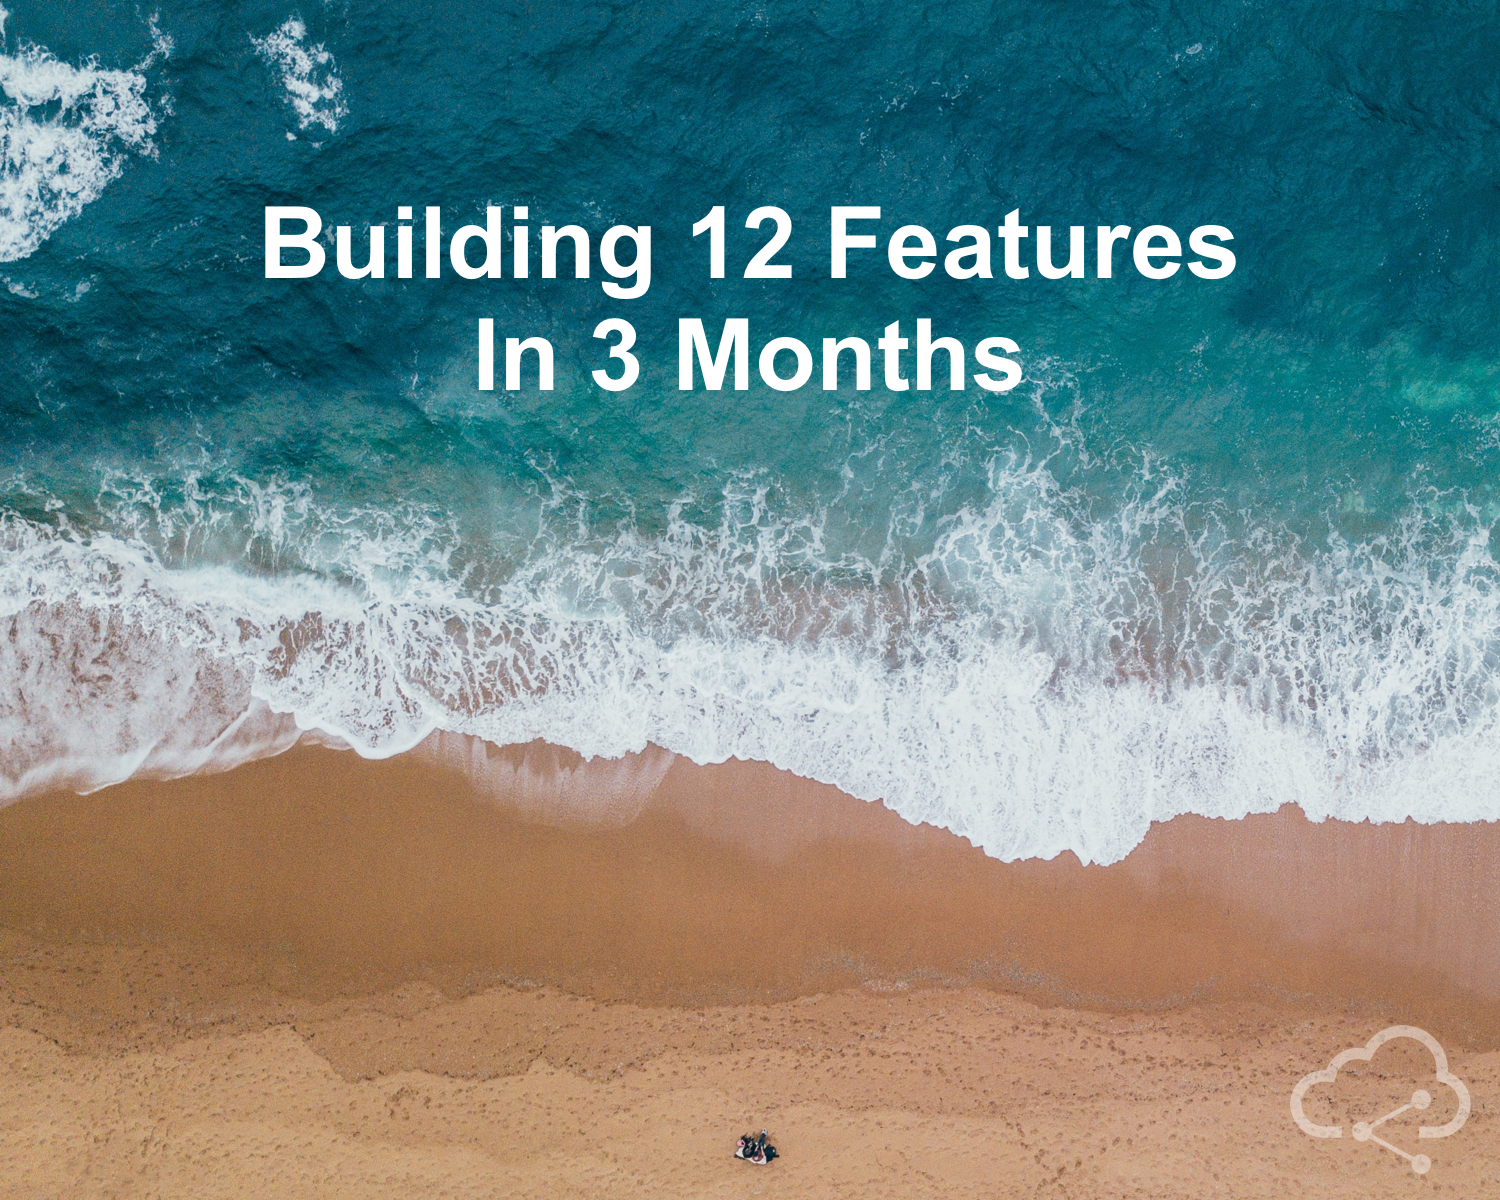 /building-12-features-in-3-months-d3e107f33a4c feature image